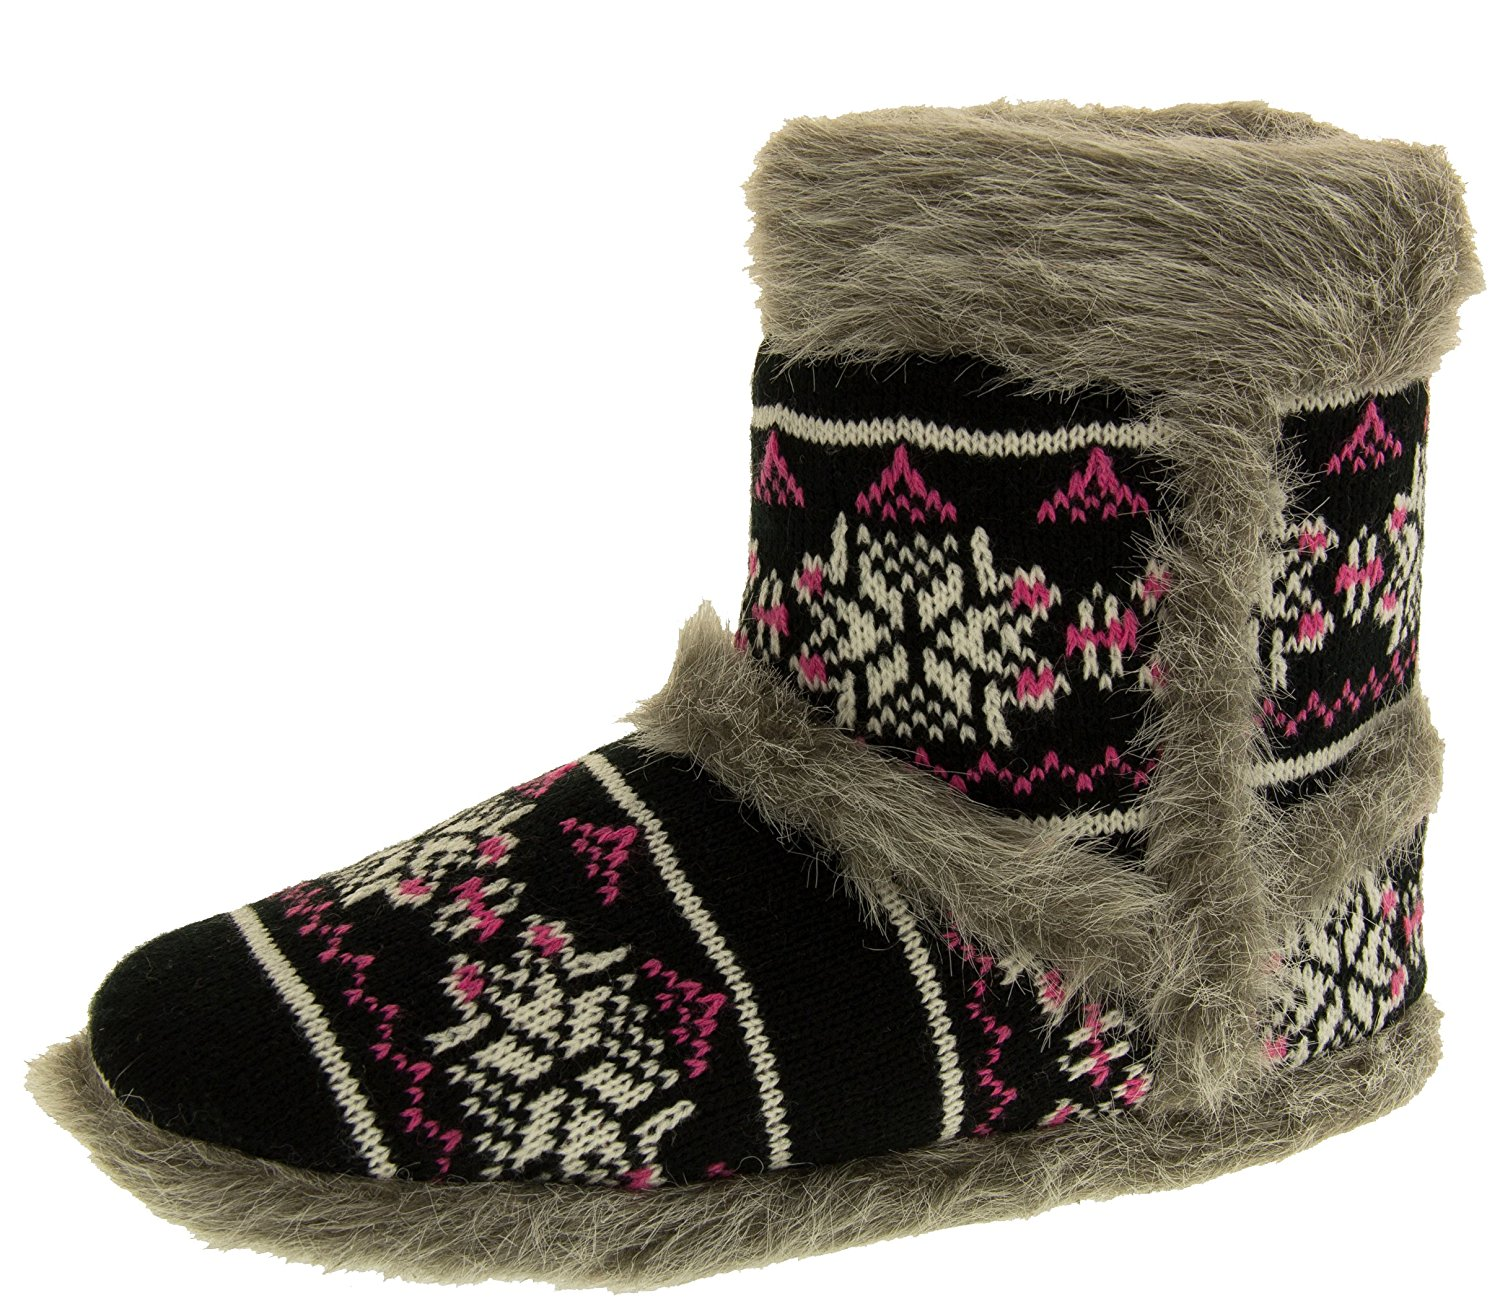 a104ff5ca95bc Cheap Slipper Boots Knitted, find Slipper Boots Knitted deals on ...